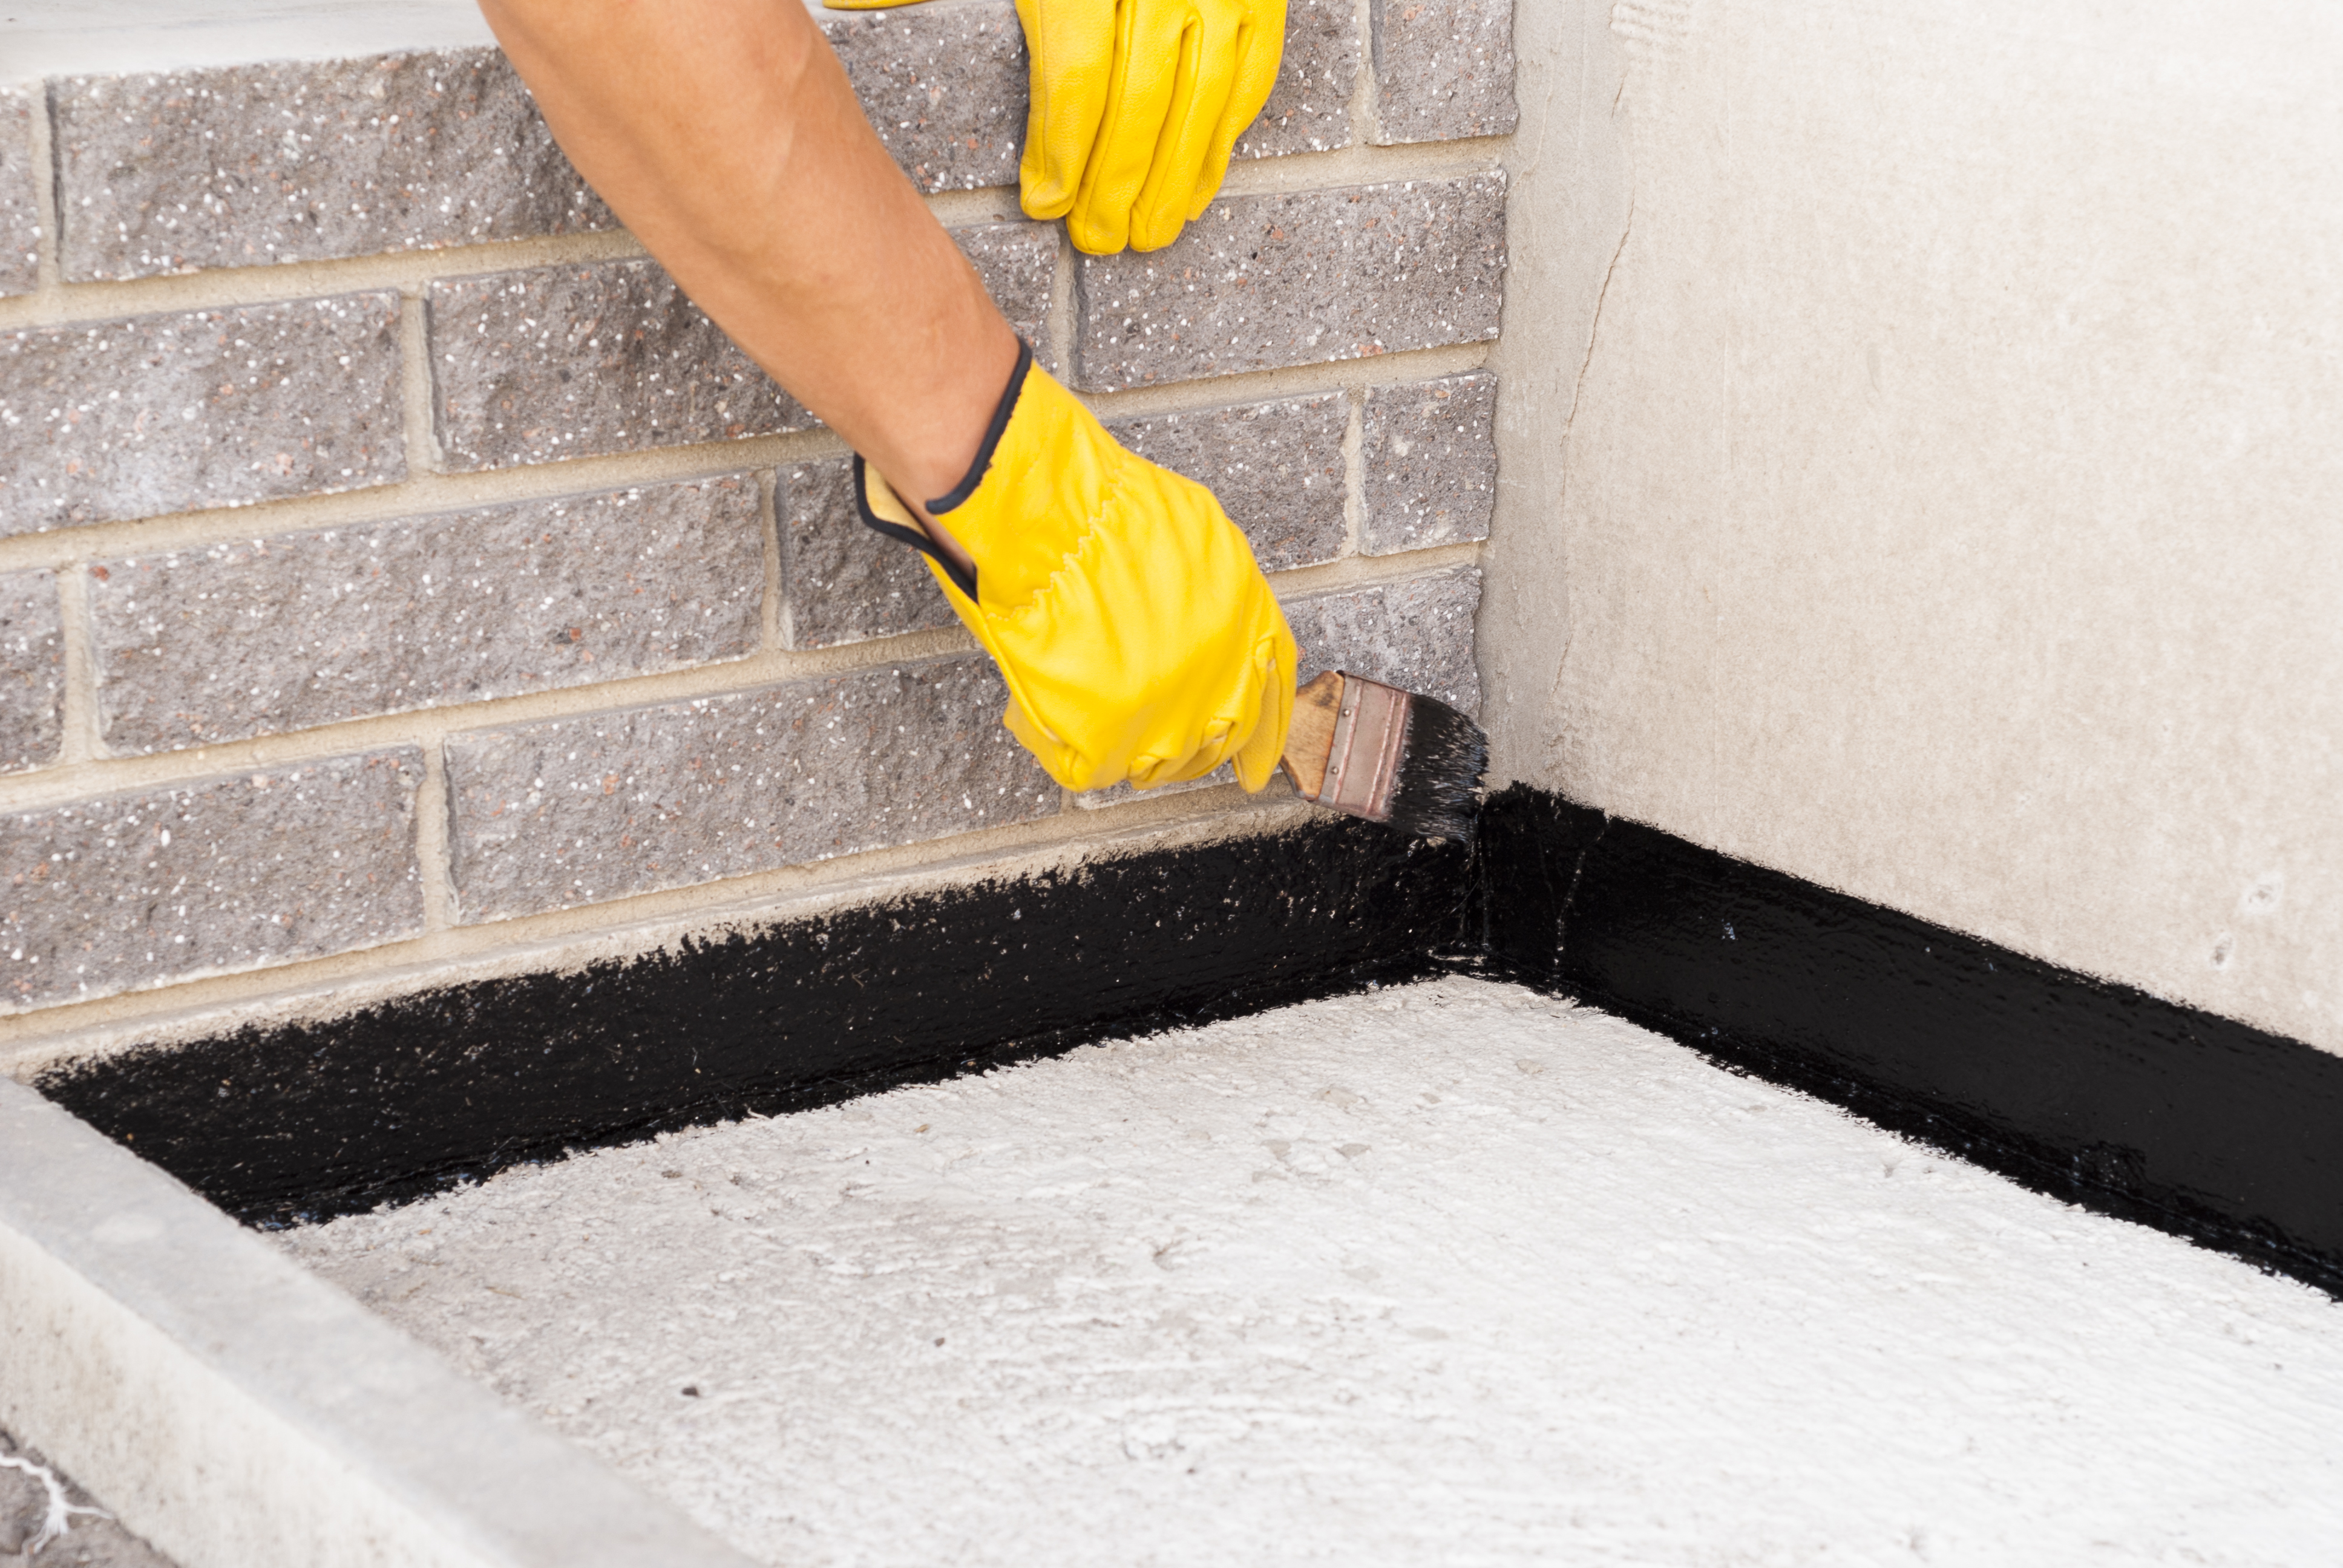 How to Check for Moisture Inside Walls | Home Guides | SF Gate